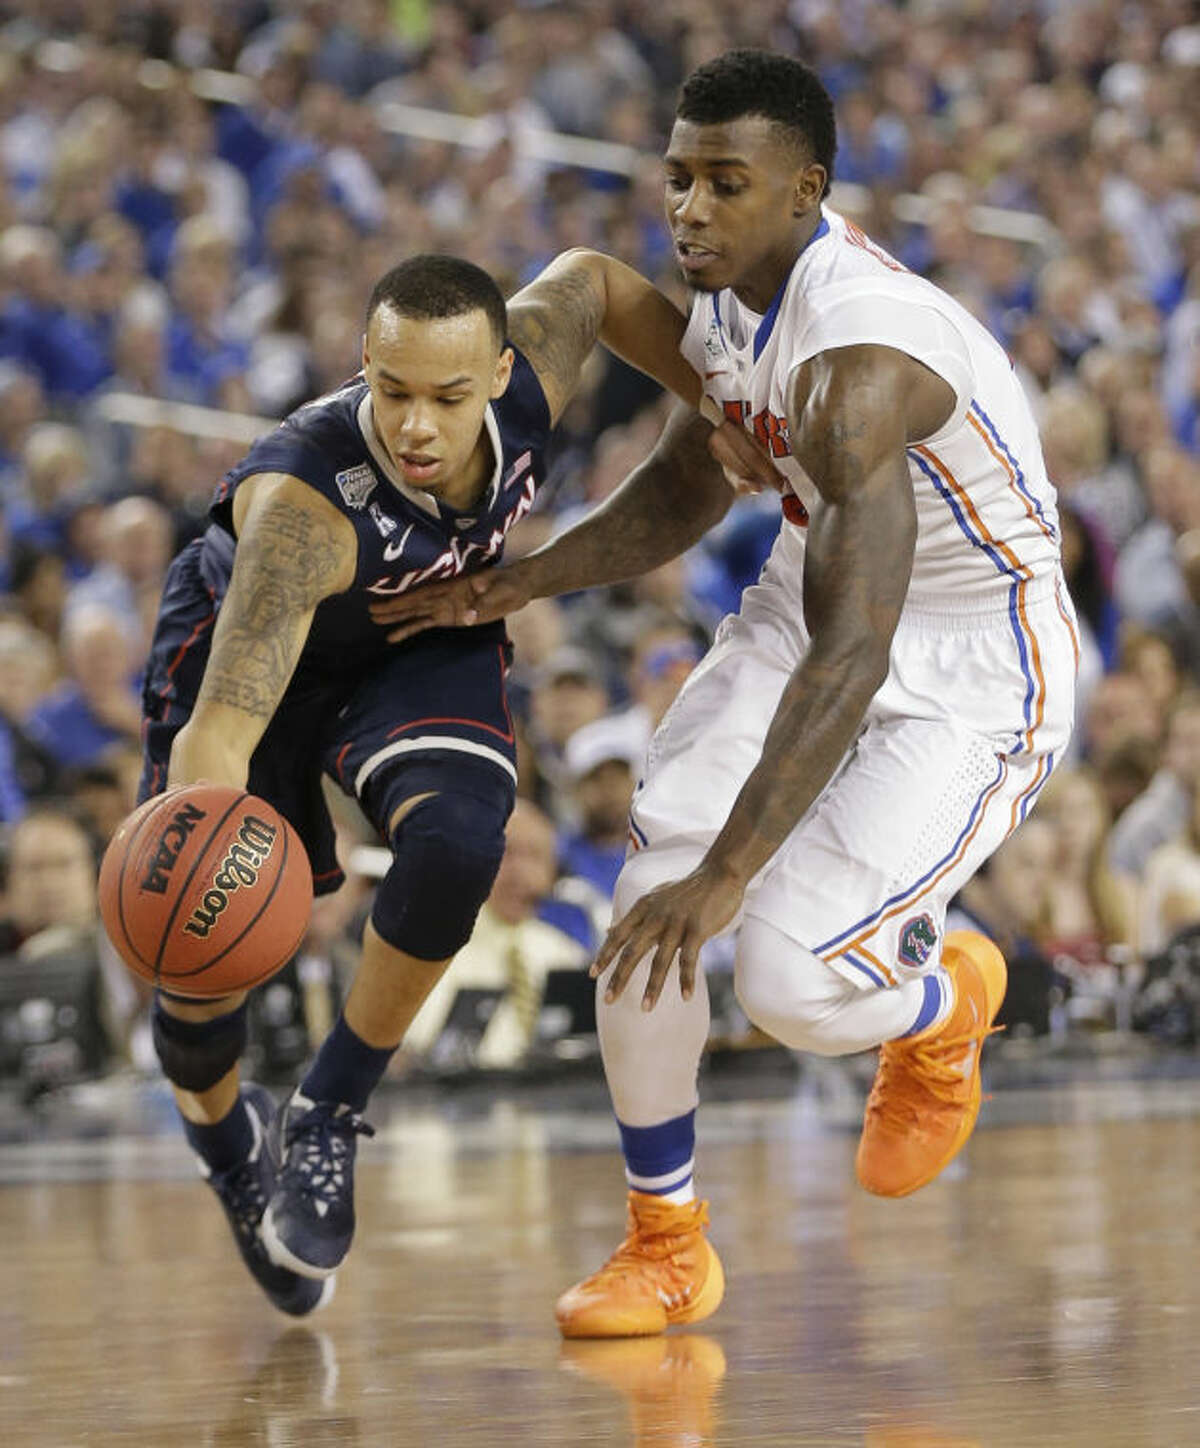 Connecticut guard Shabazz Napier, left, drives past Florida forward Casey Prather during the second half of an NCAA Final Four tournament college basketball semifinal game Saturday, April 5, 2014, in Arlington, Texas. (AP Photo/Eric Gay)